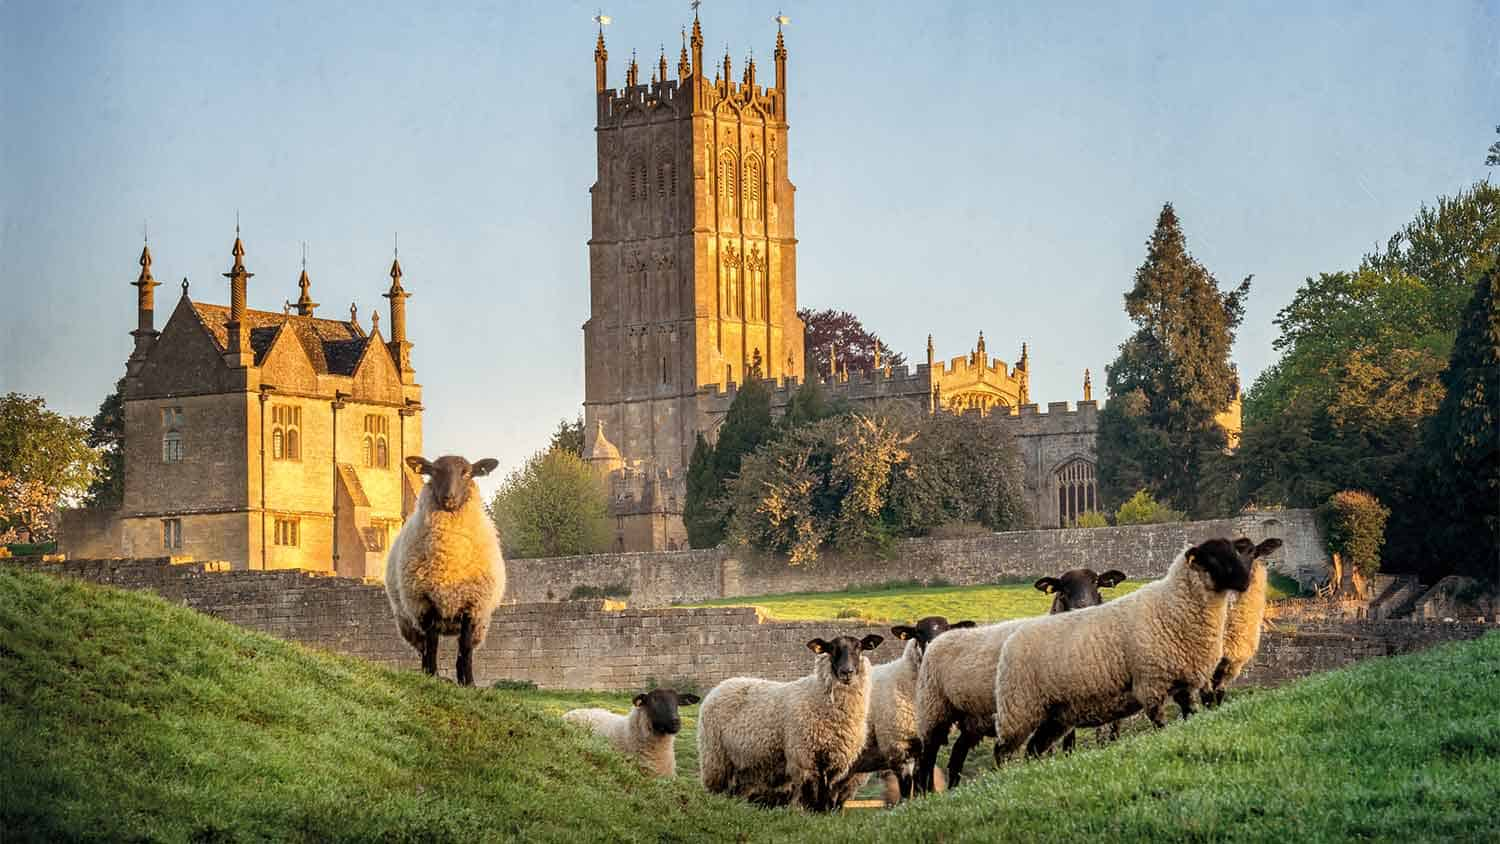 Church with sheep roaming in a field in the foreground